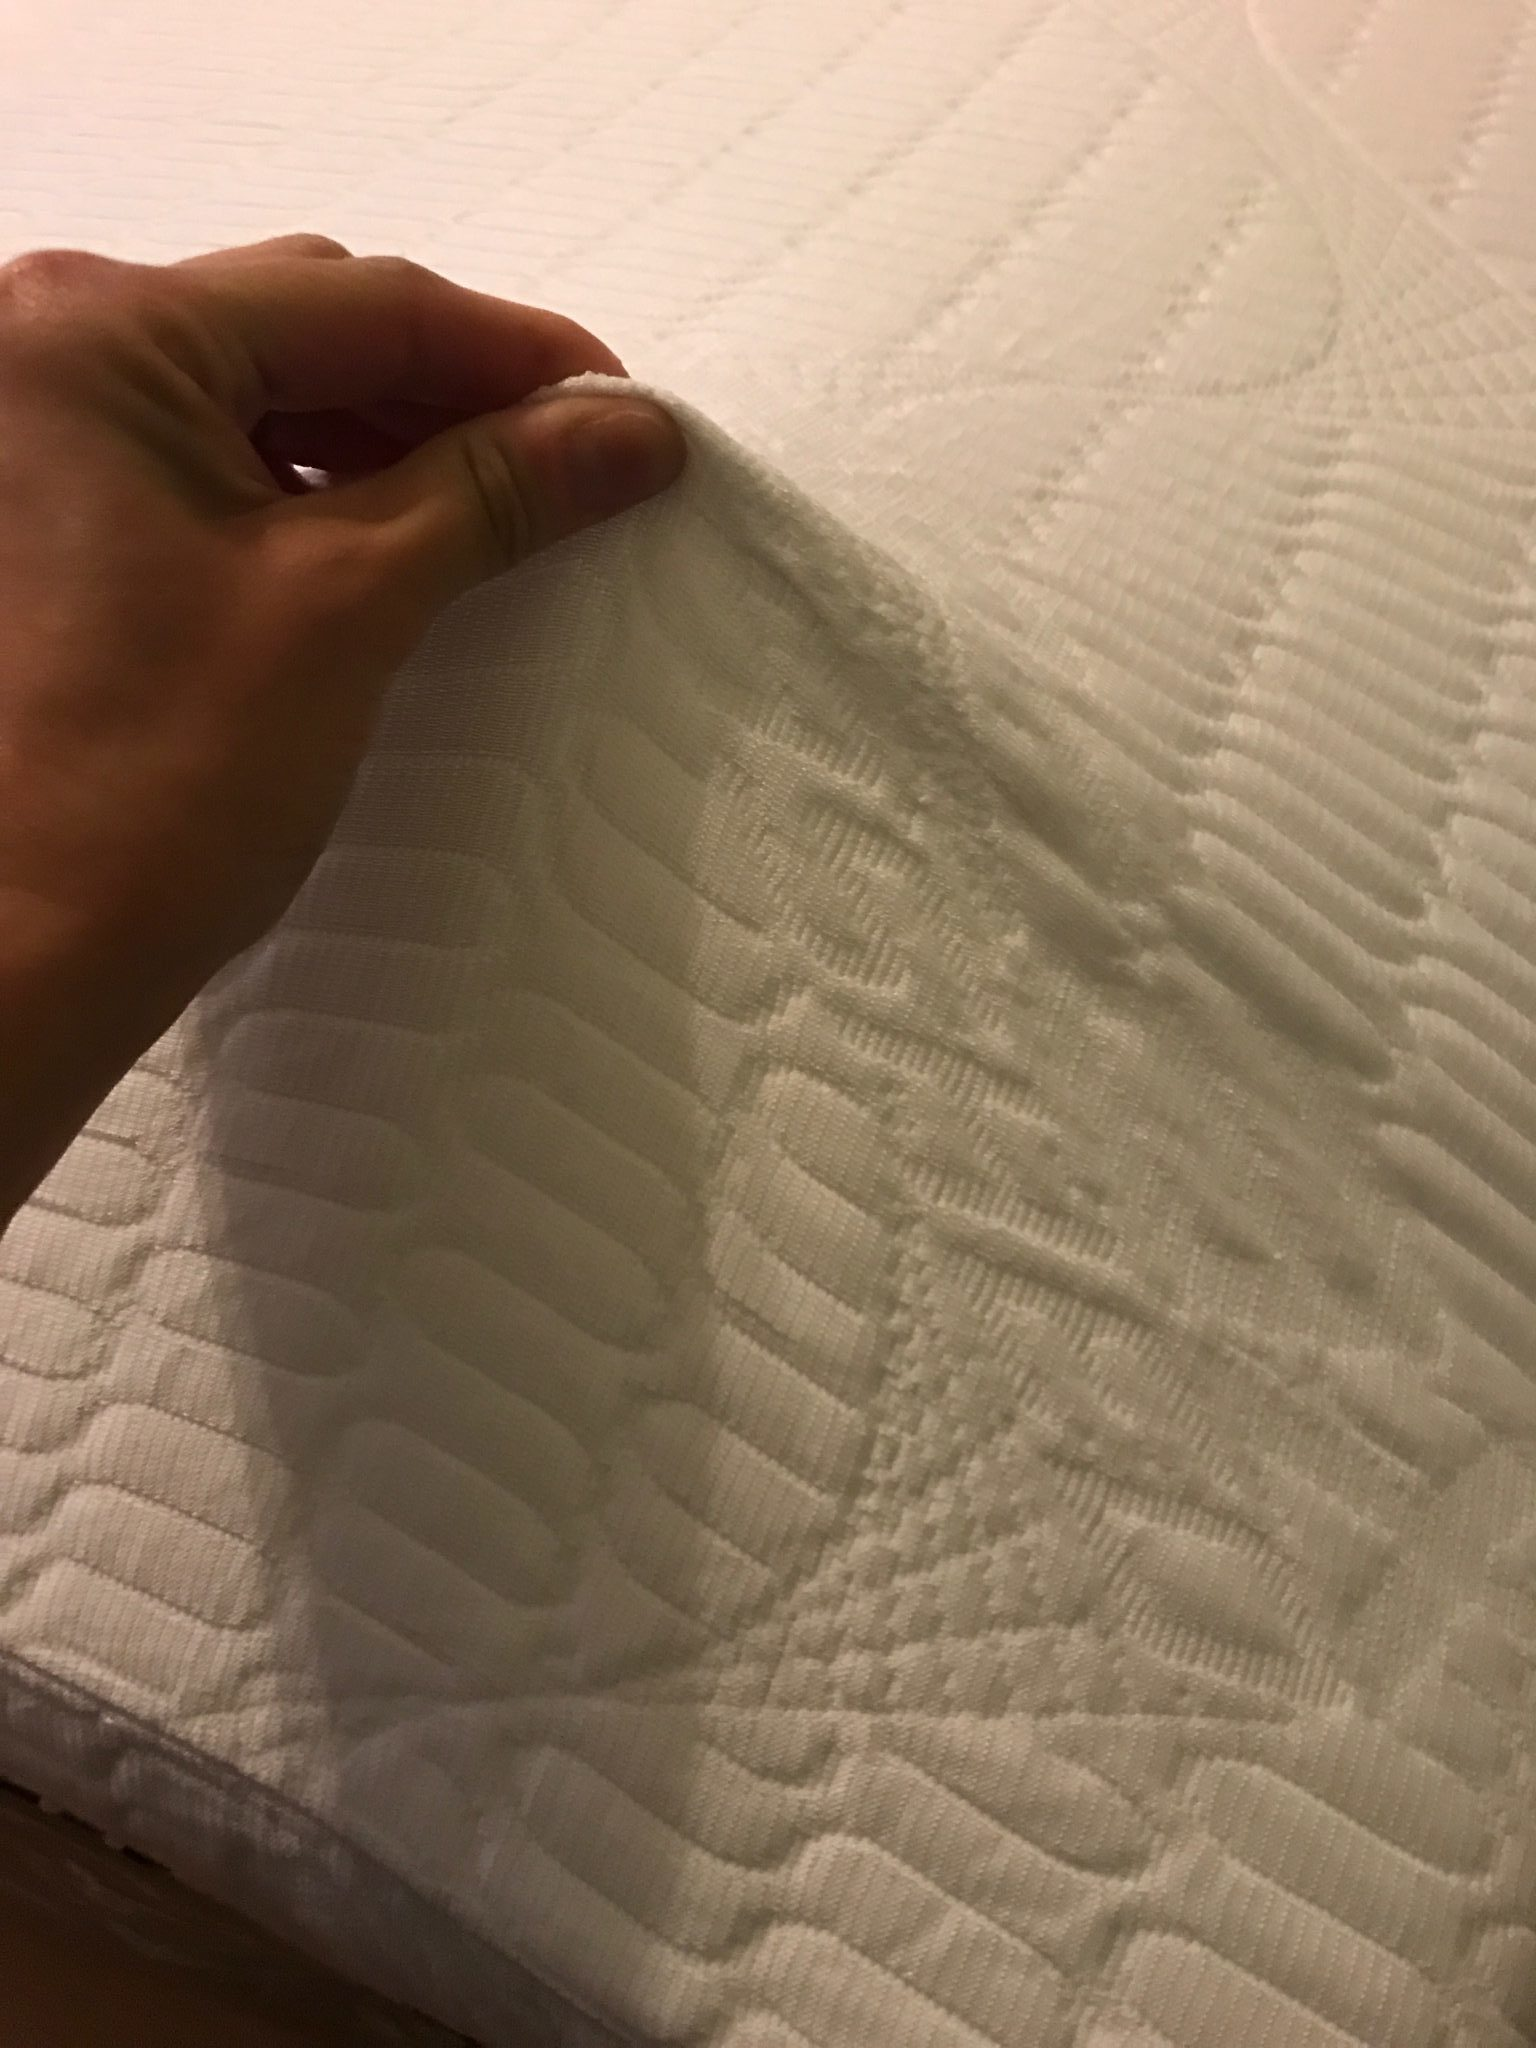 REM-Fit Sleep 500 Mattress Review